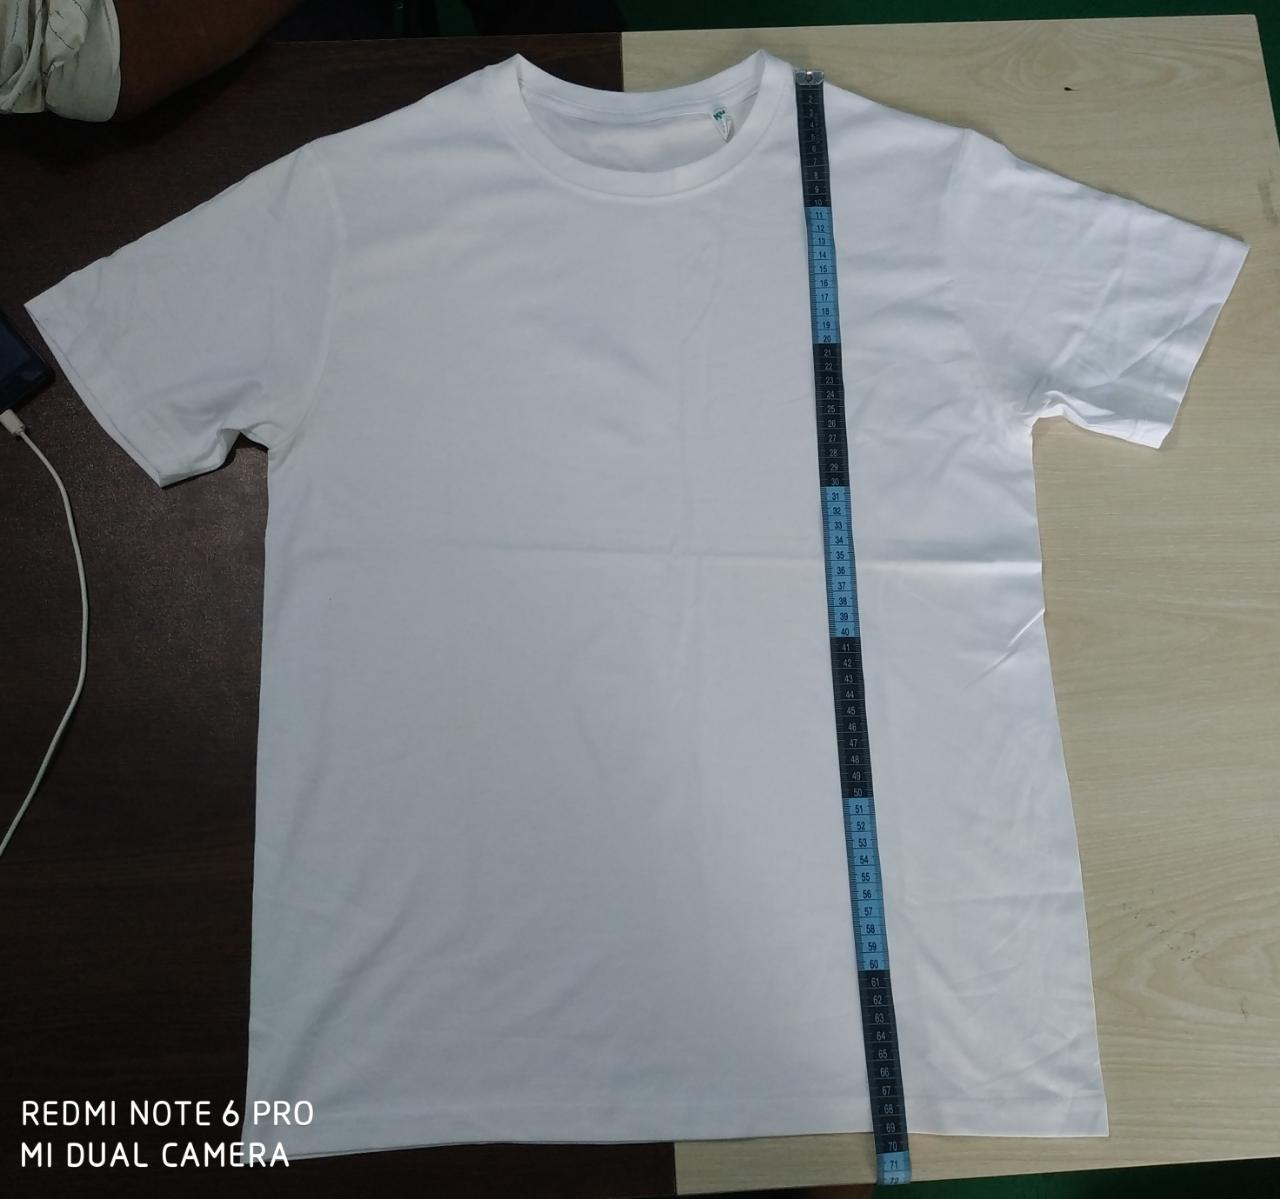 33326 - Men's white T shirt Bangladesh